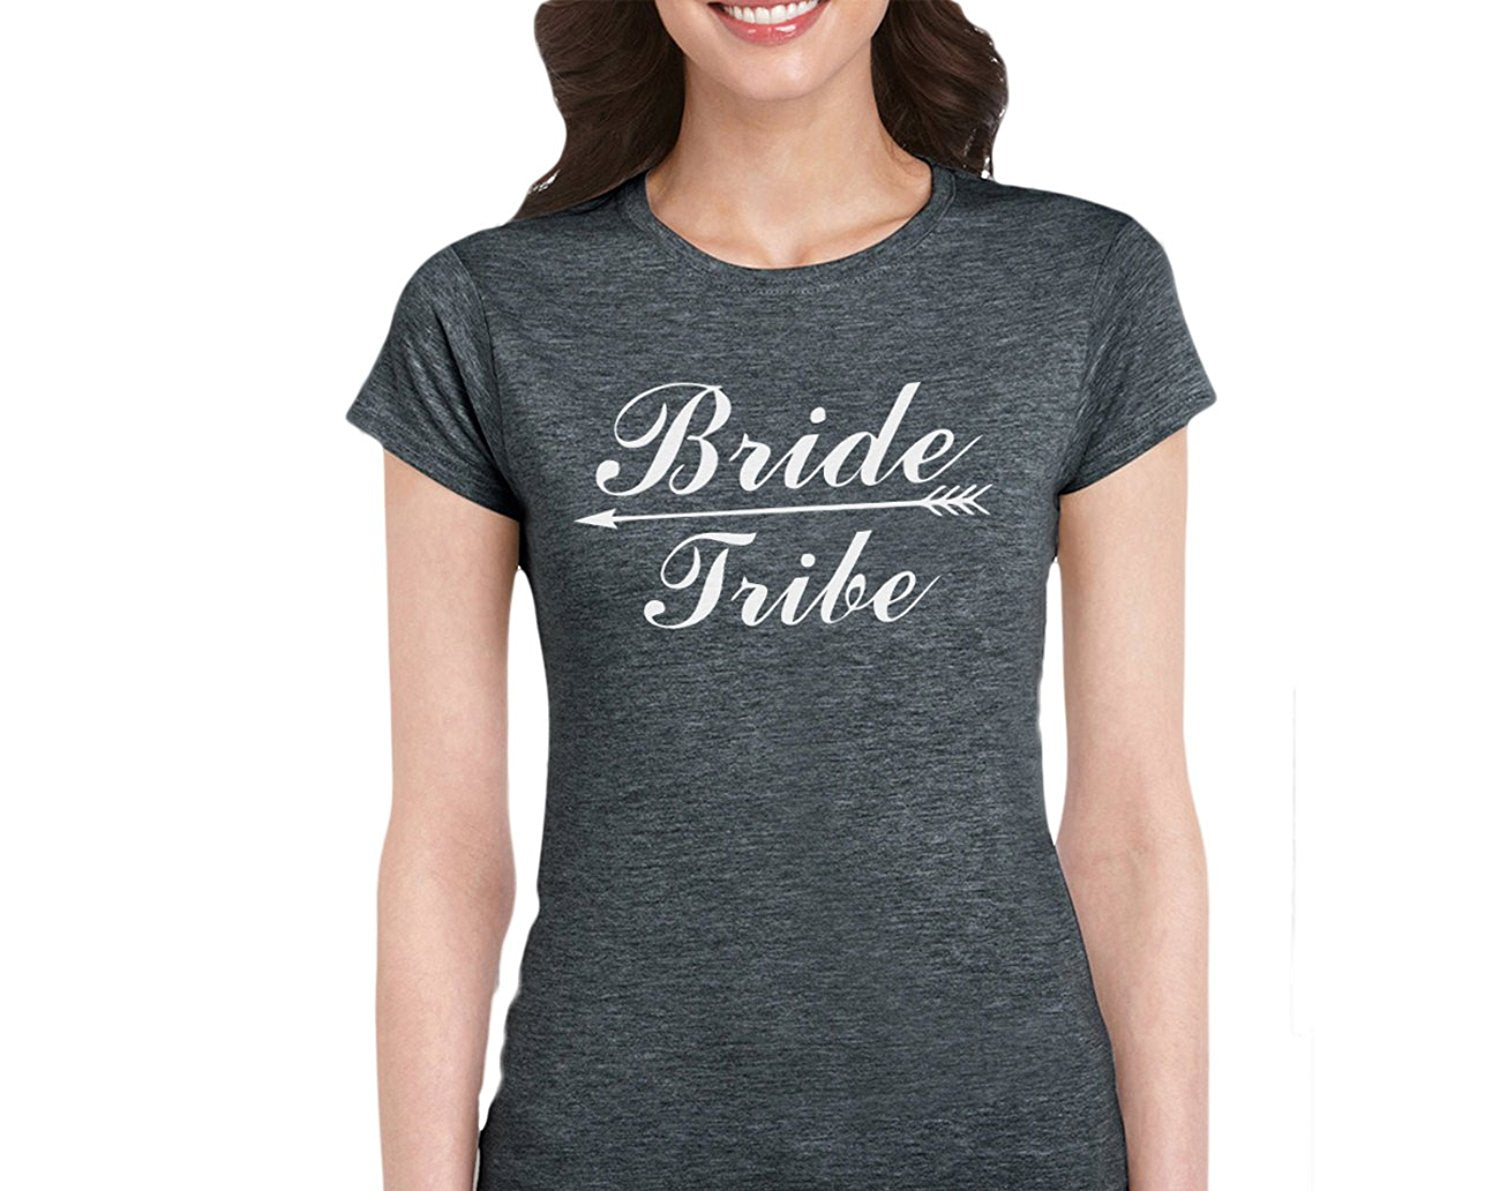 1d38eda16 Bride Tribe-Bridal Party T-Shirt For Bride Squad Maid Of Honor Bridesmaid